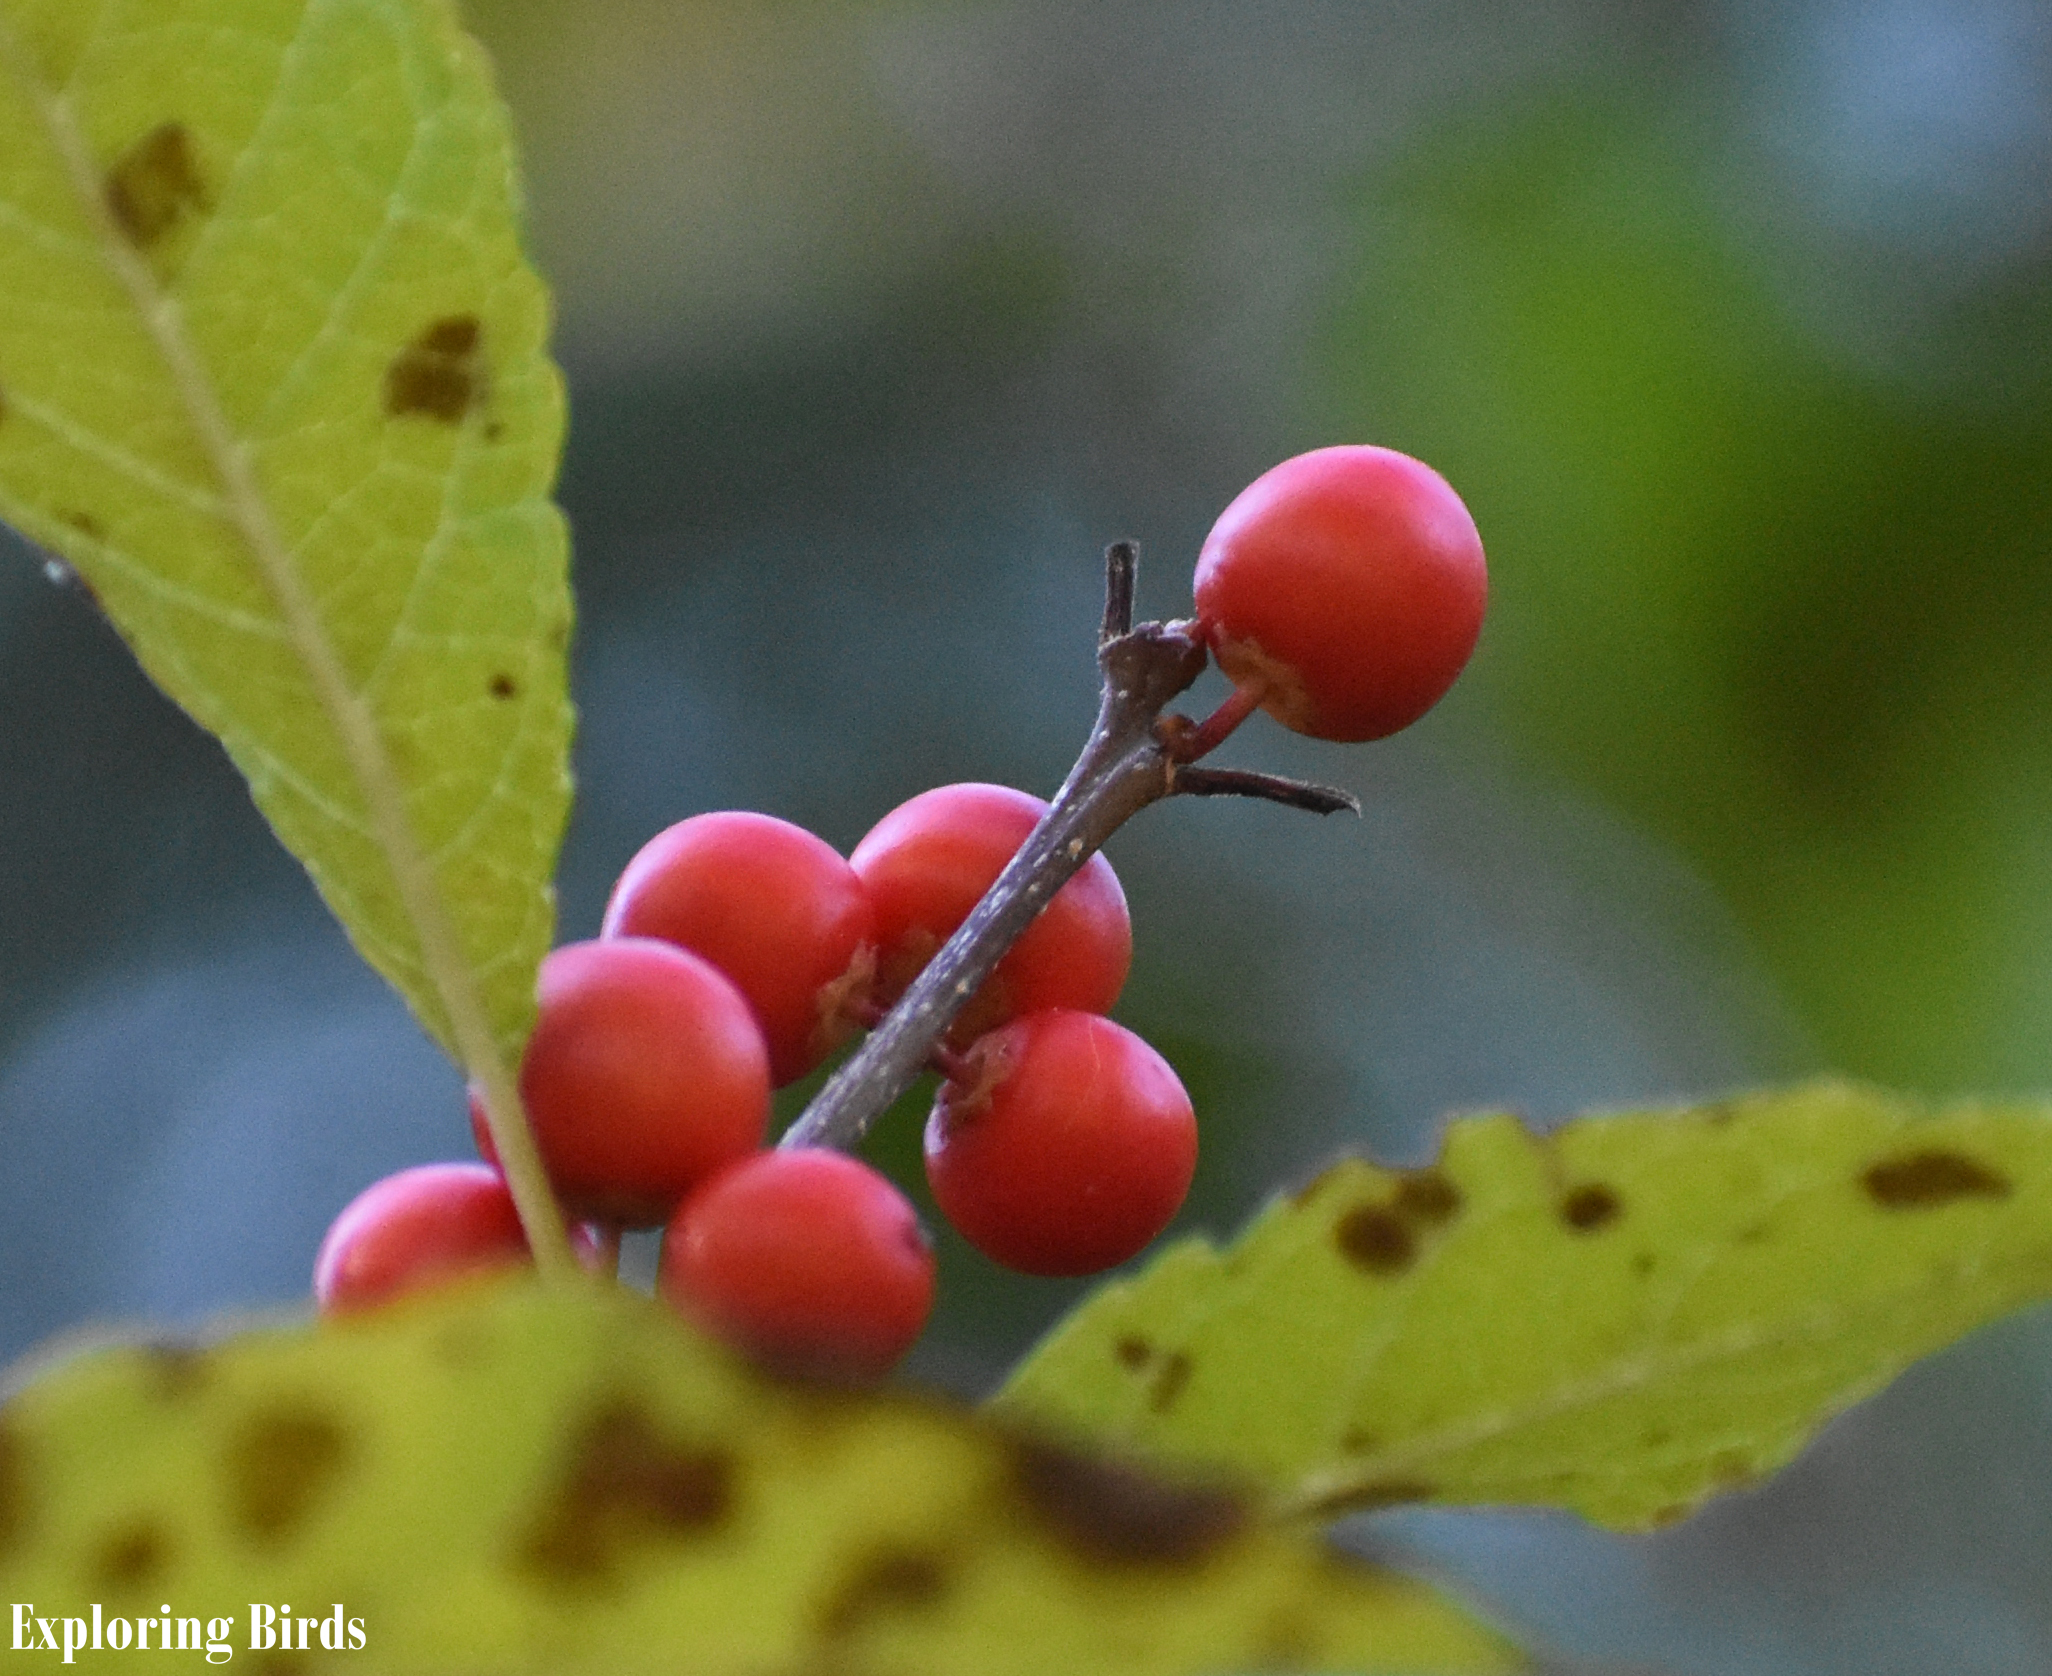 Winterberry is a shrub that attracts birds